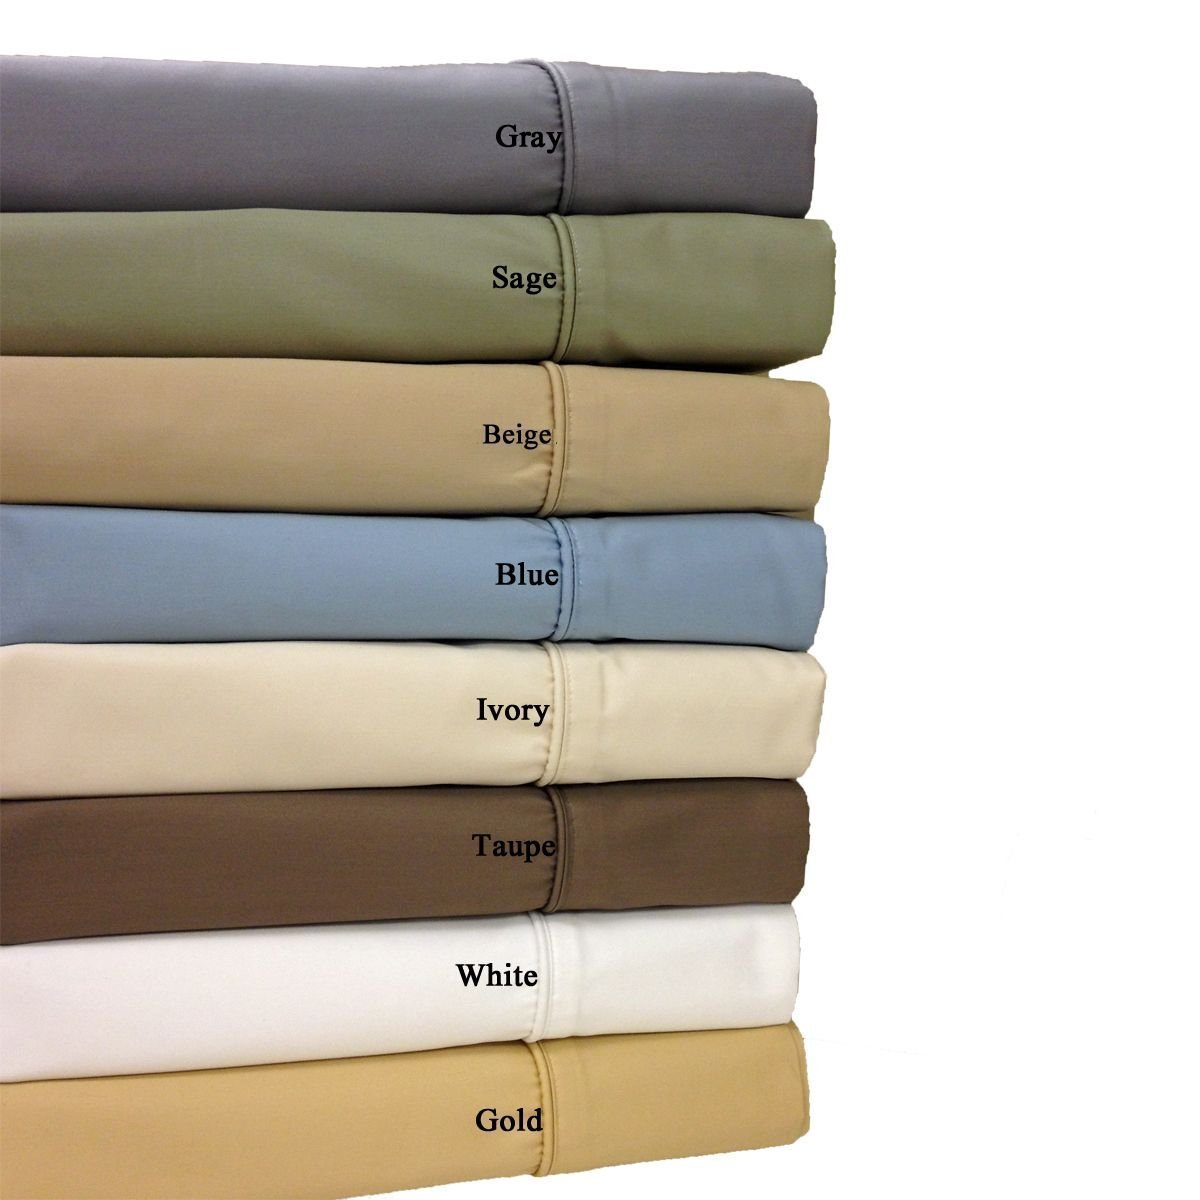 800 Thread Count Sheets Queen | Egyptian Cotton Sheets | Egyptian Cotton Sheets Queen